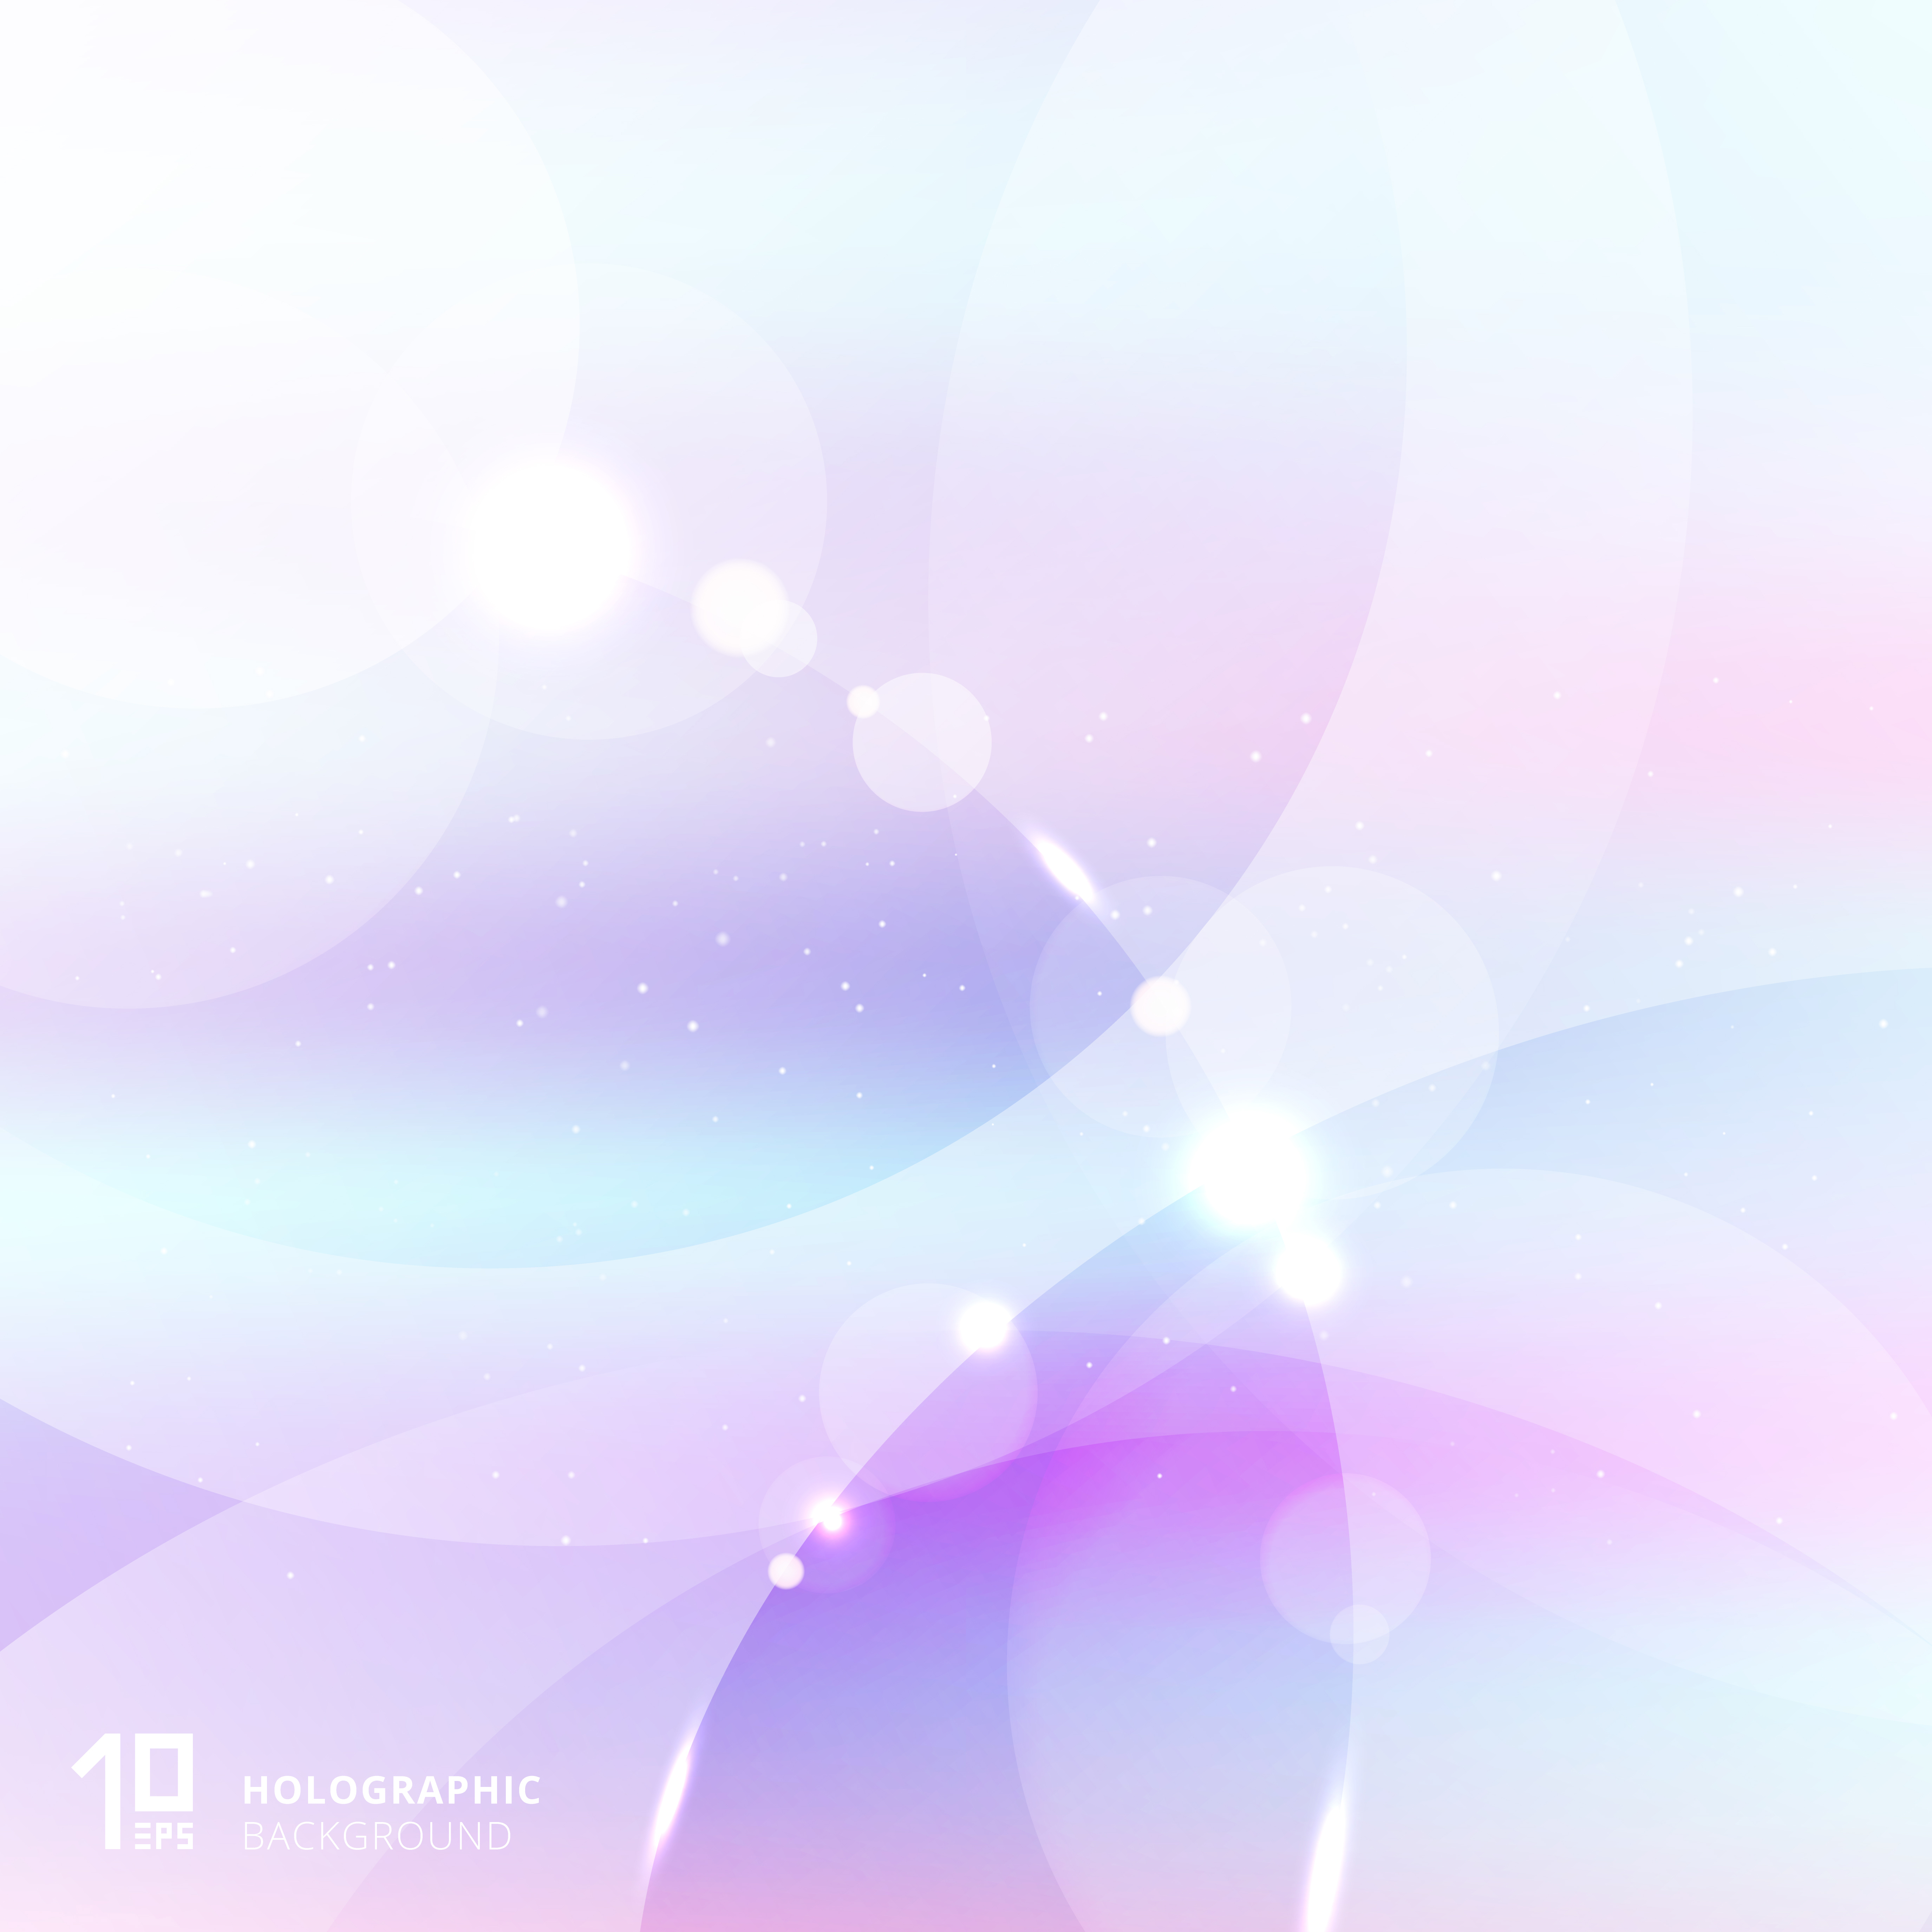 Abstract Gradient Pastel Color With White And Gray Circles